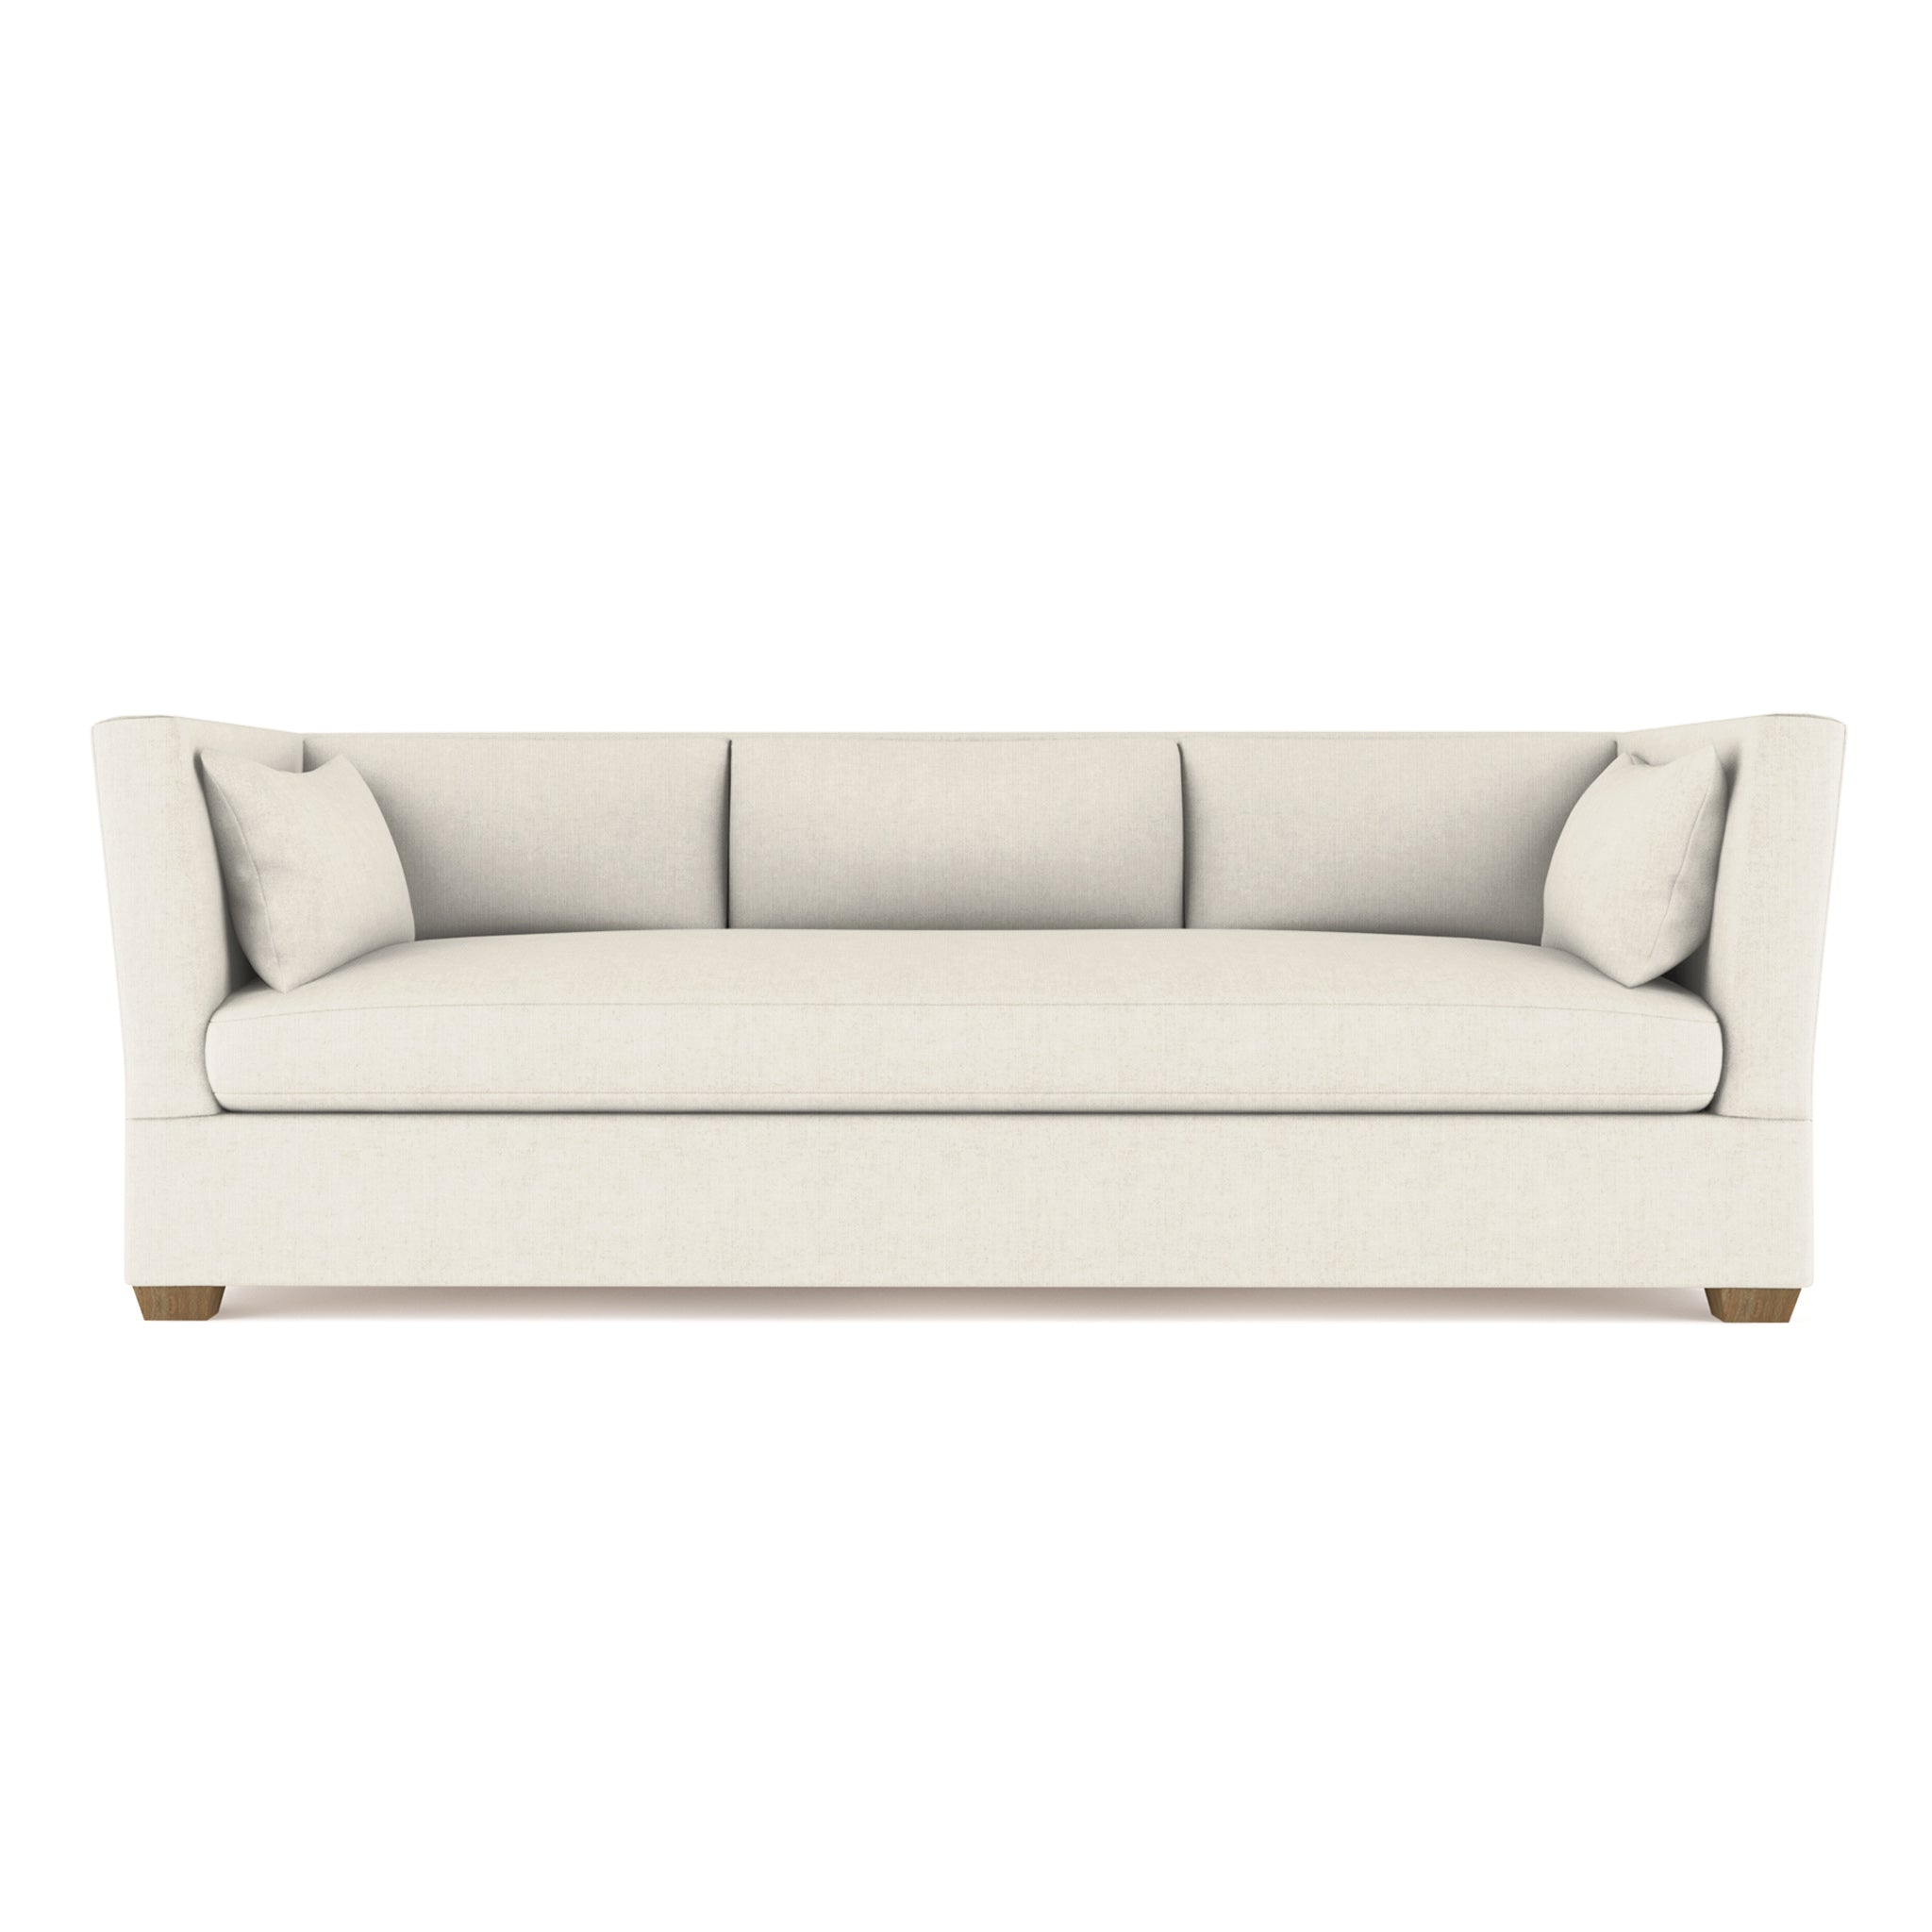 Rivington Sofa - Alabaster Box Weave Linen